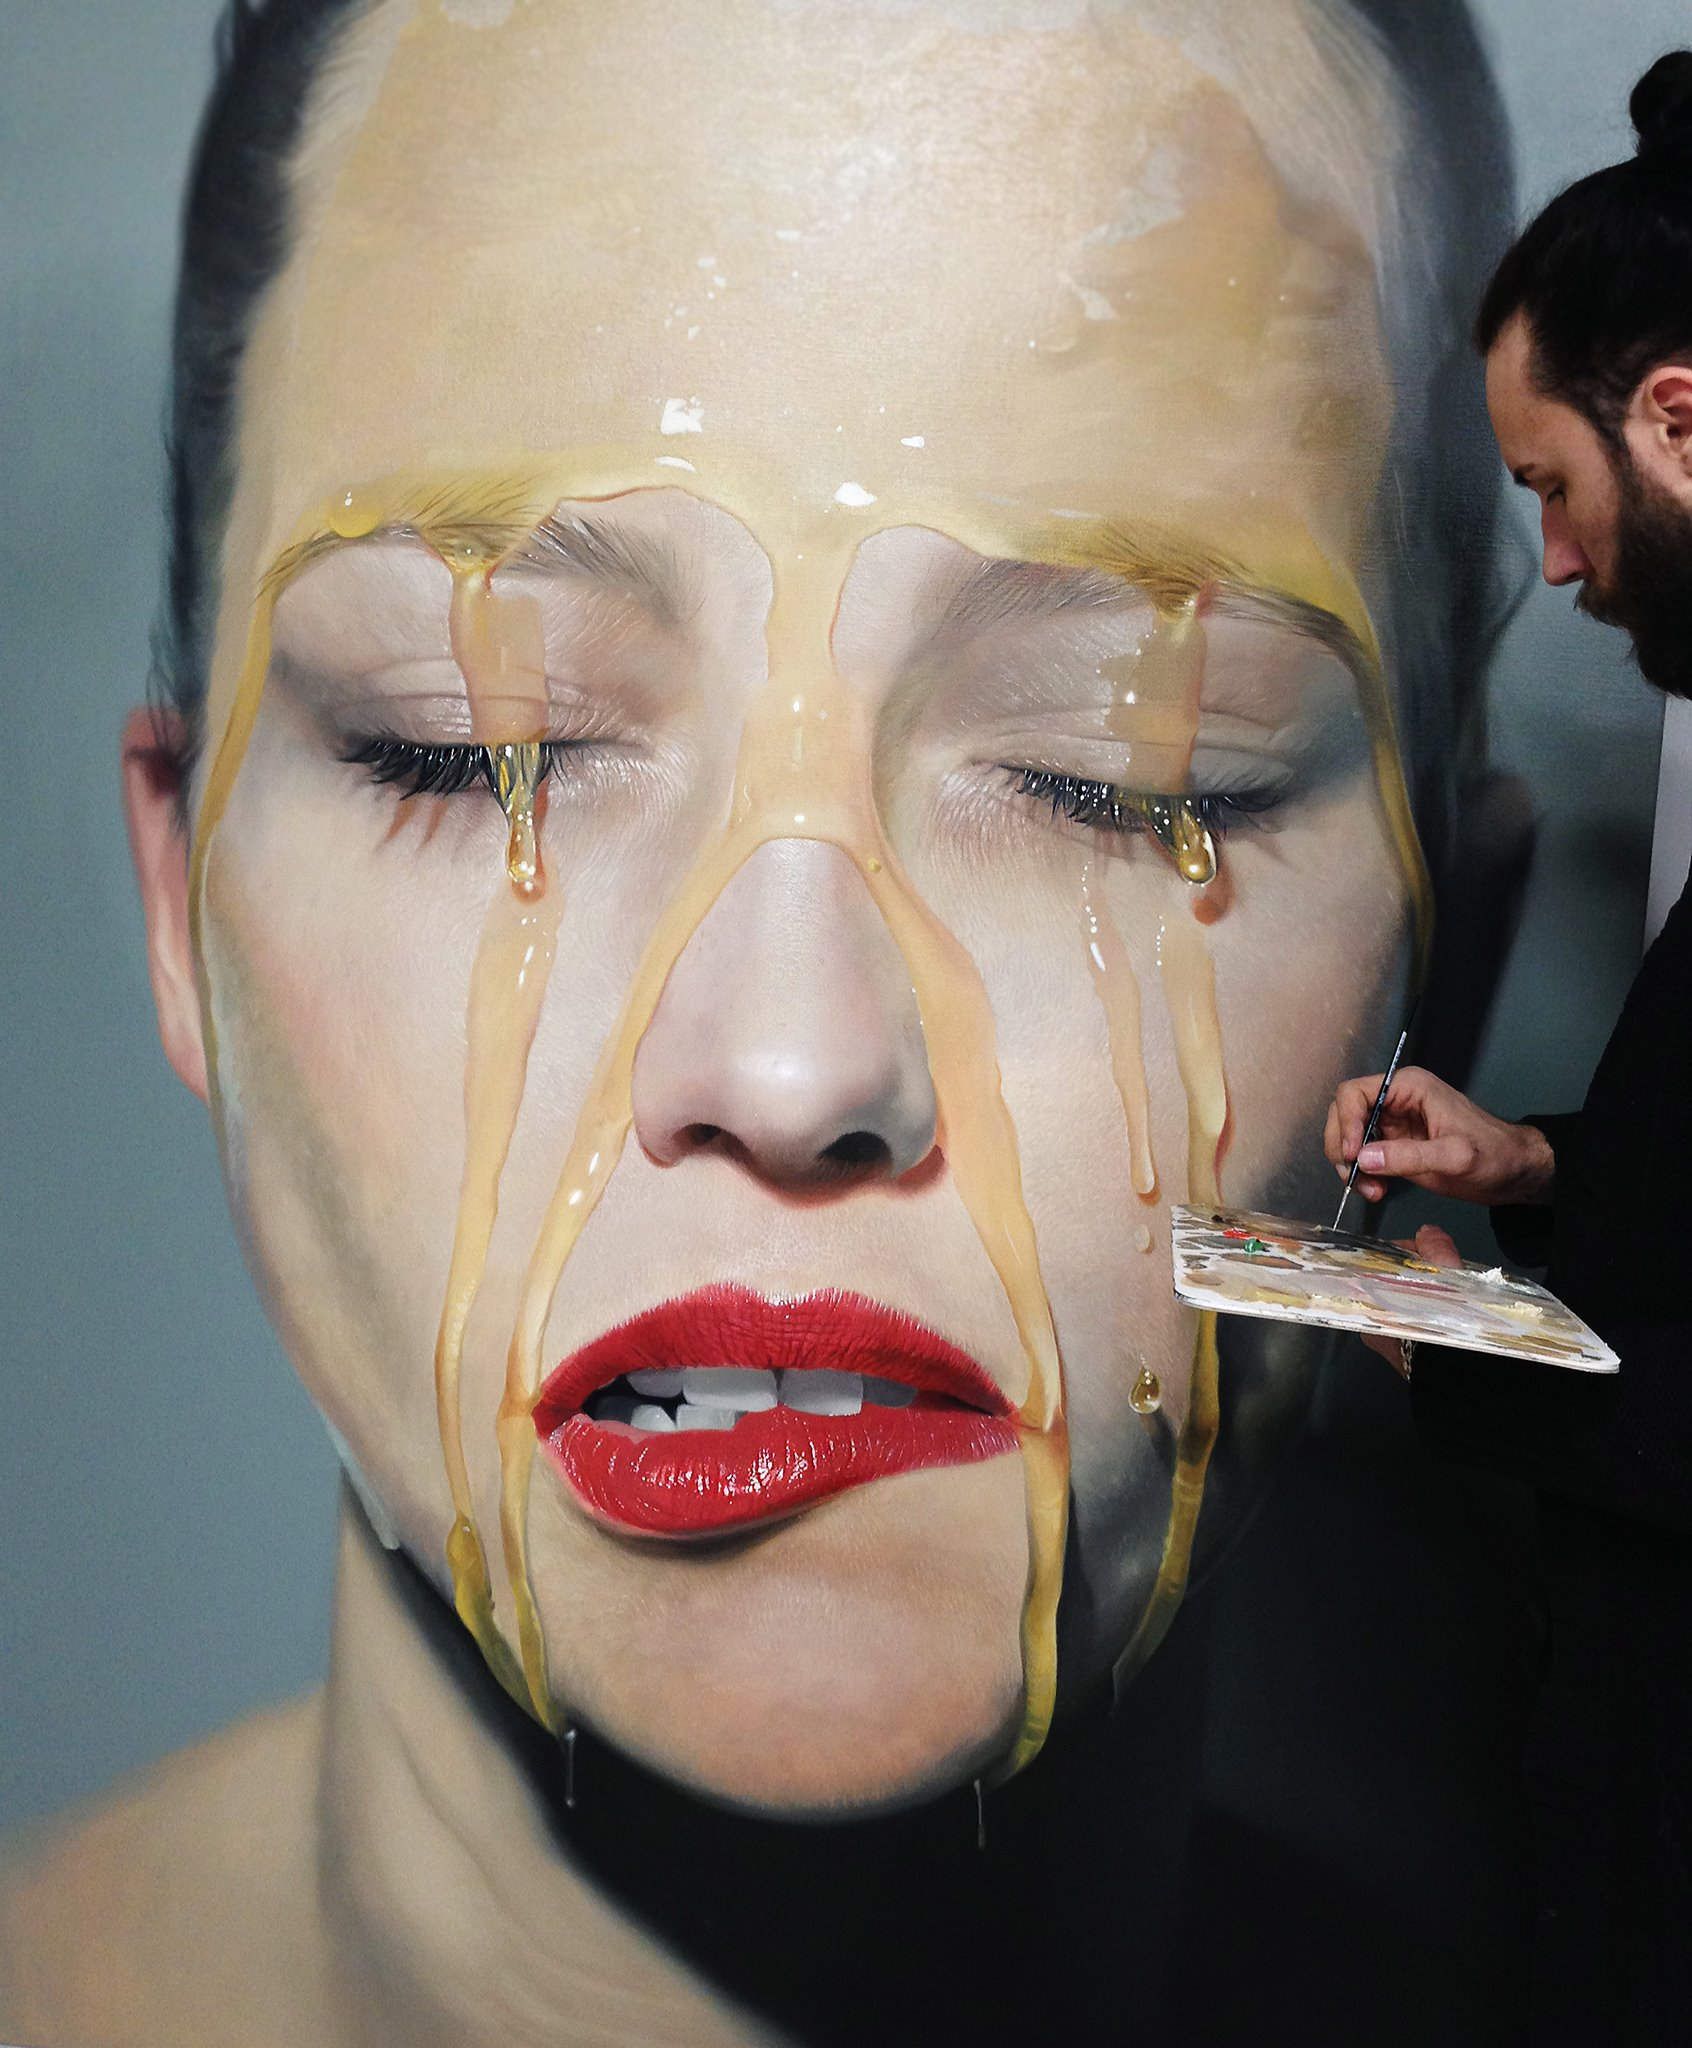 Mike Darkas – Hyper-realistic paintings portrait